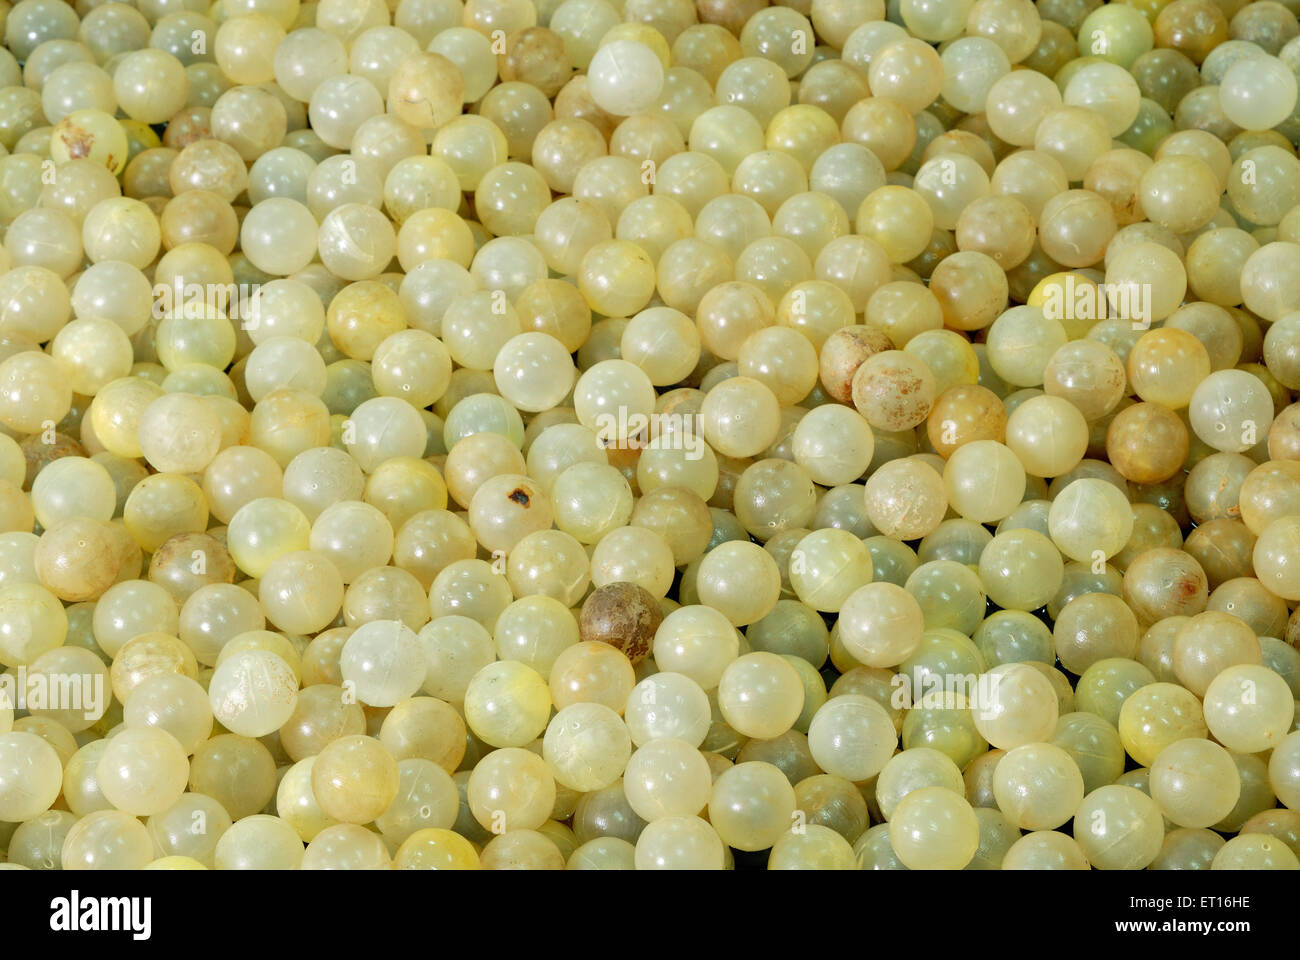 Ping pong balls used in industrial process ; India - Stock Image